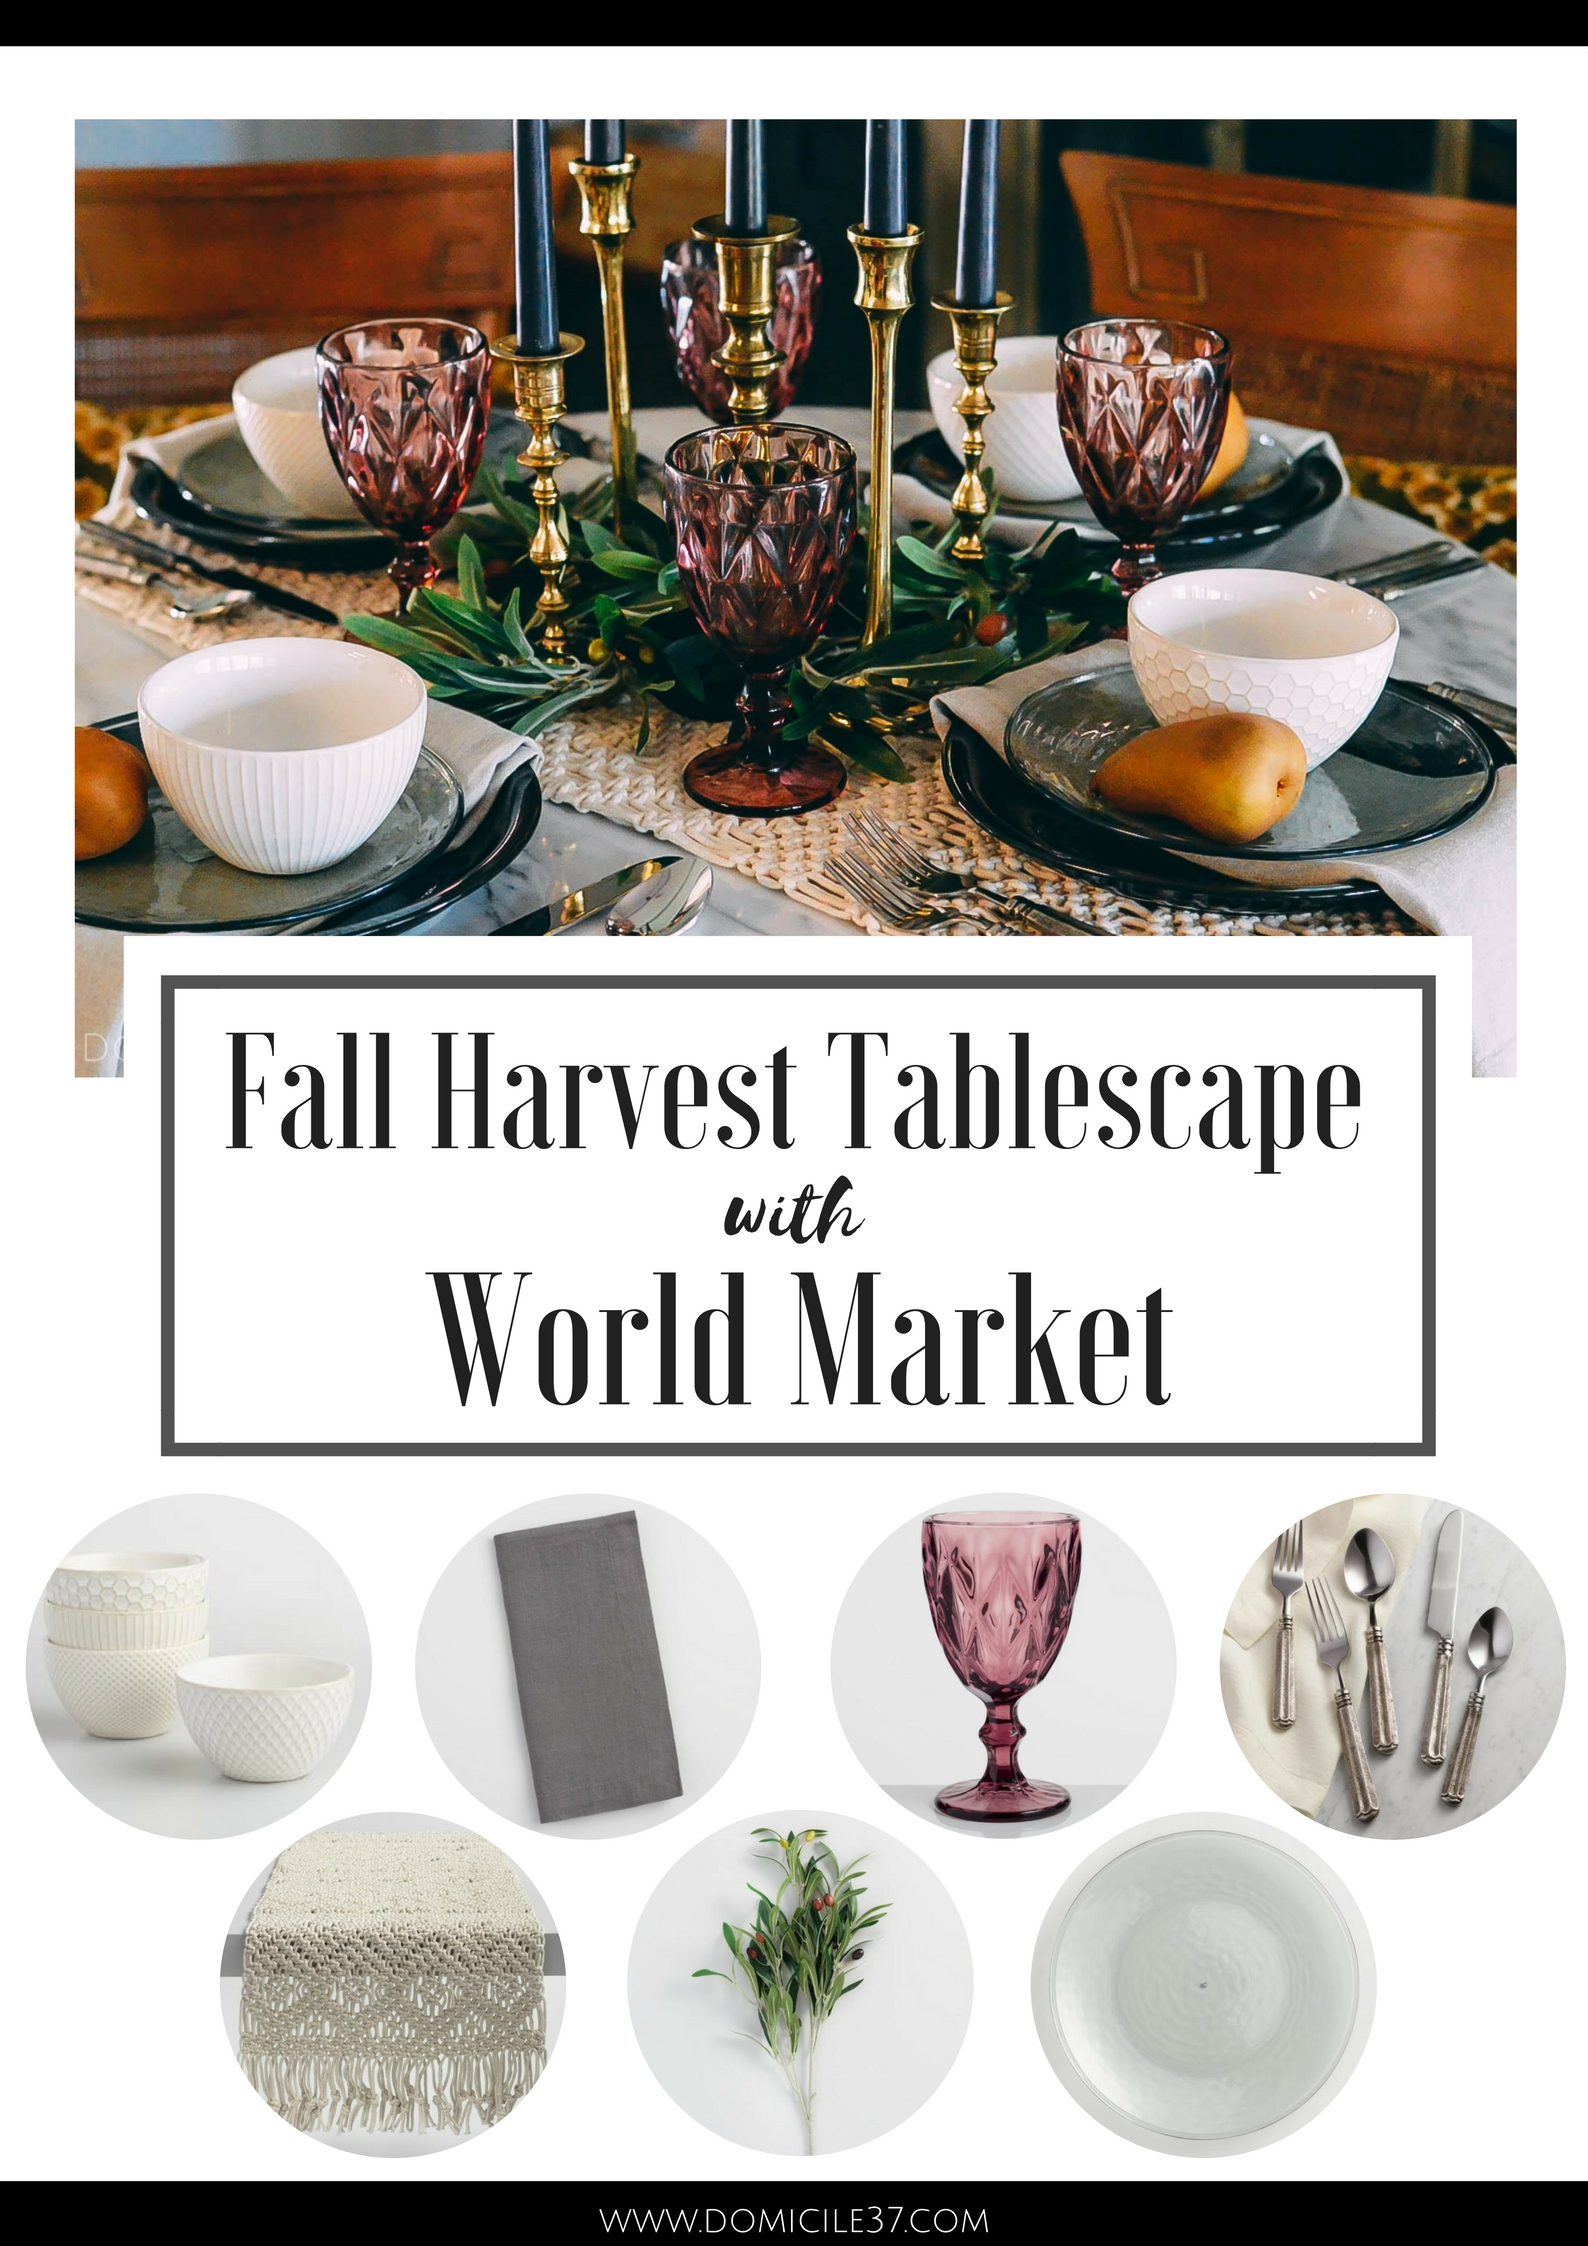 World Market Fall Harvest Tablescape Idea | Gothic tablescape | Medieval table setting | Moody Fall table setting